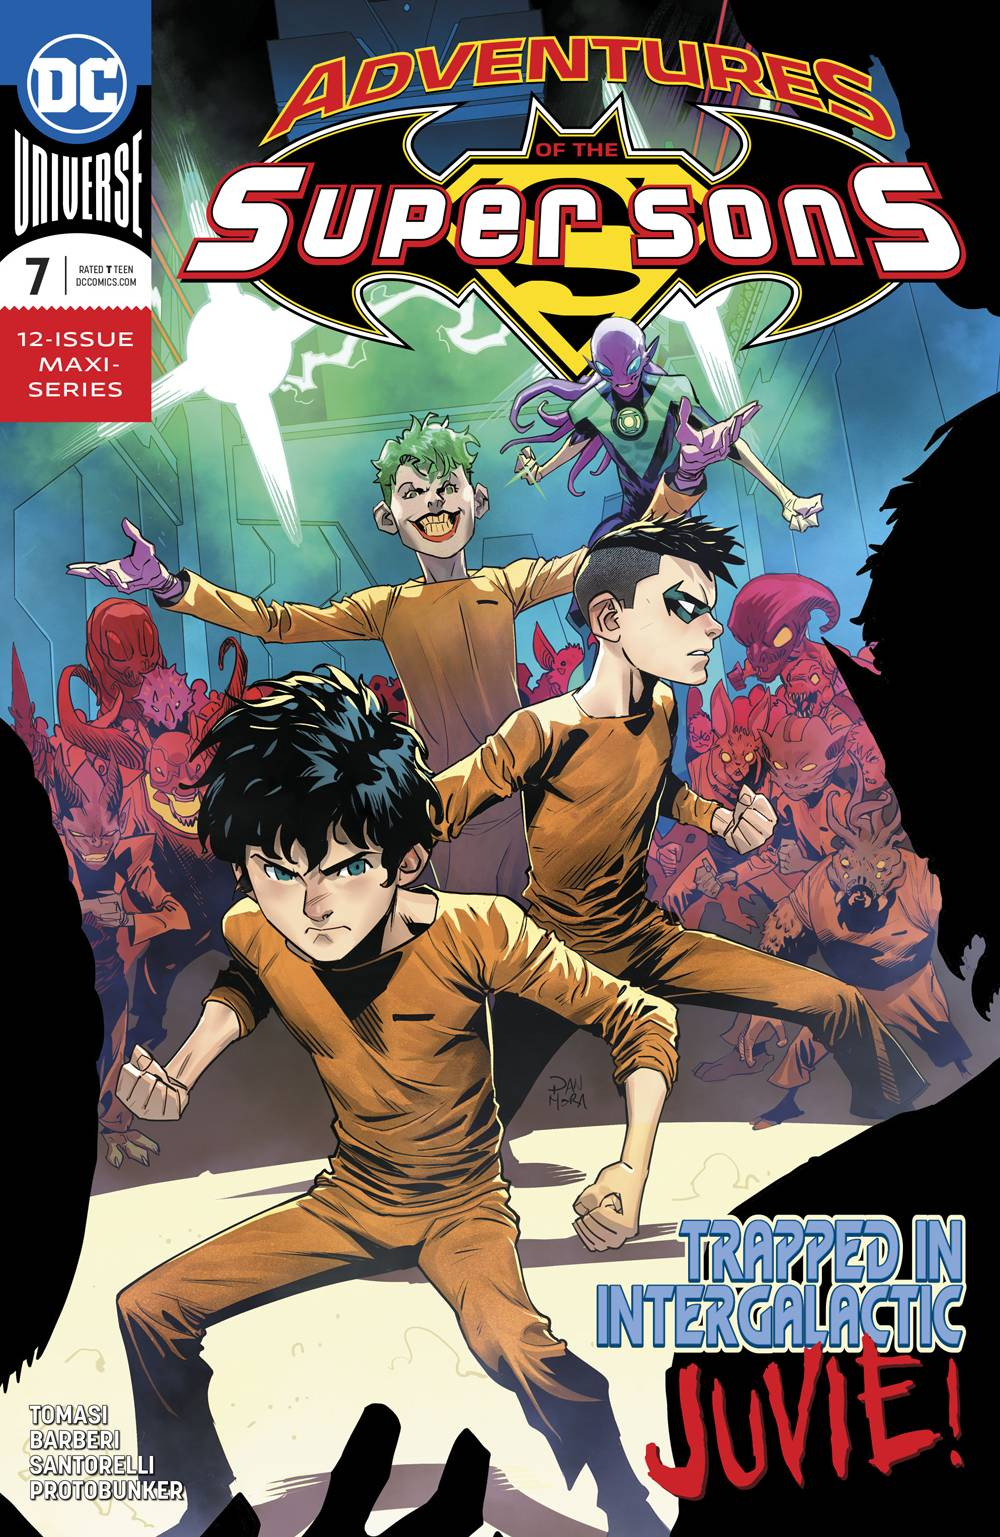 ADVENTURES OF THE SUPER SONS 7 of 12.jpg